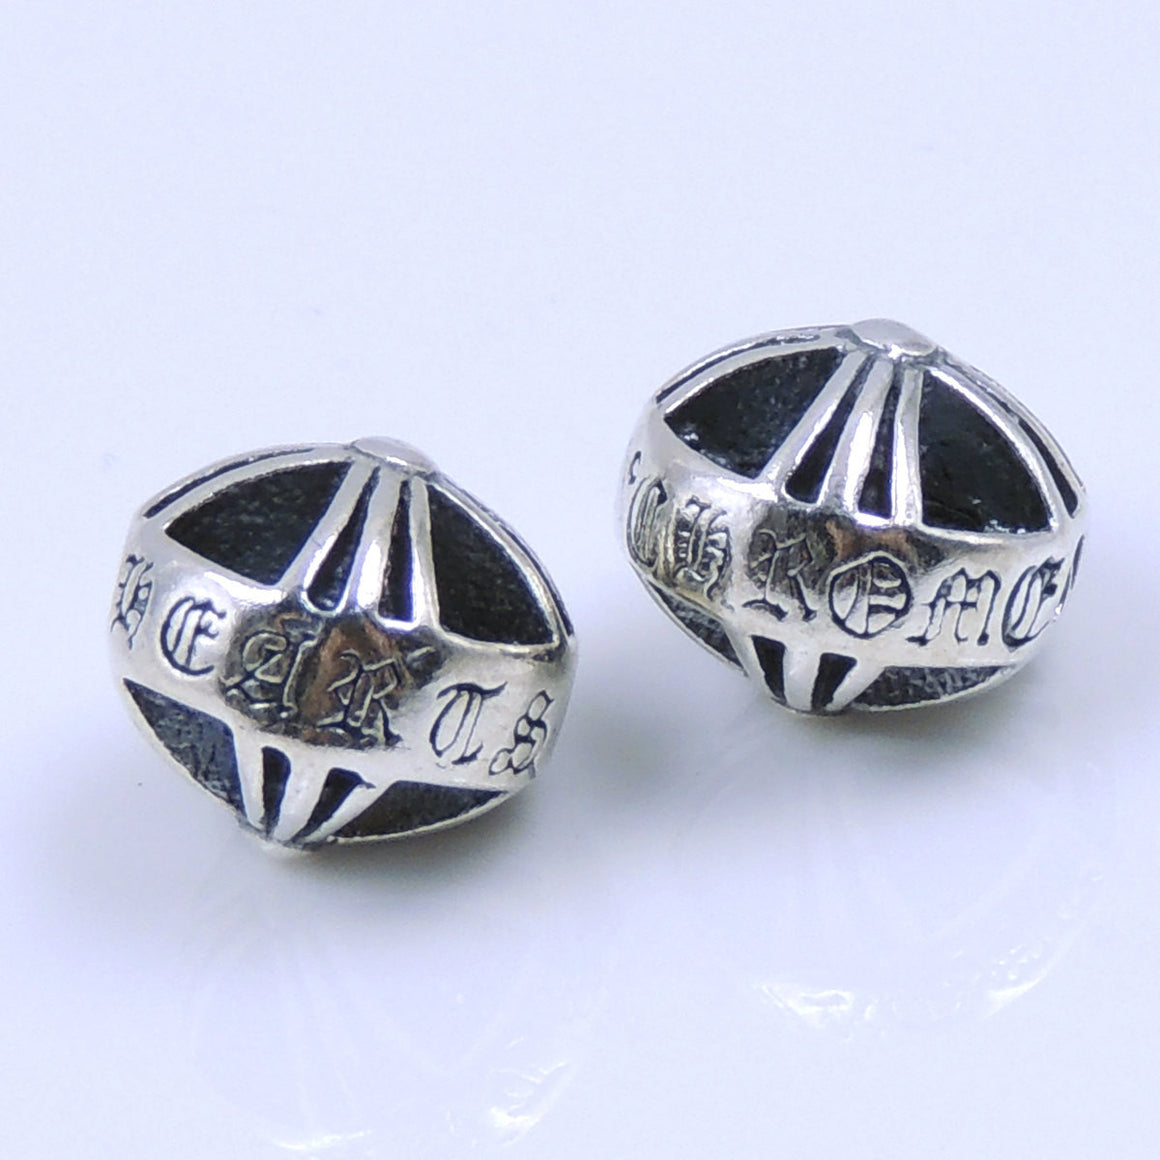 2 PCS Round Gothic Cross Bead - S925 Sterling Silver WSP251X2